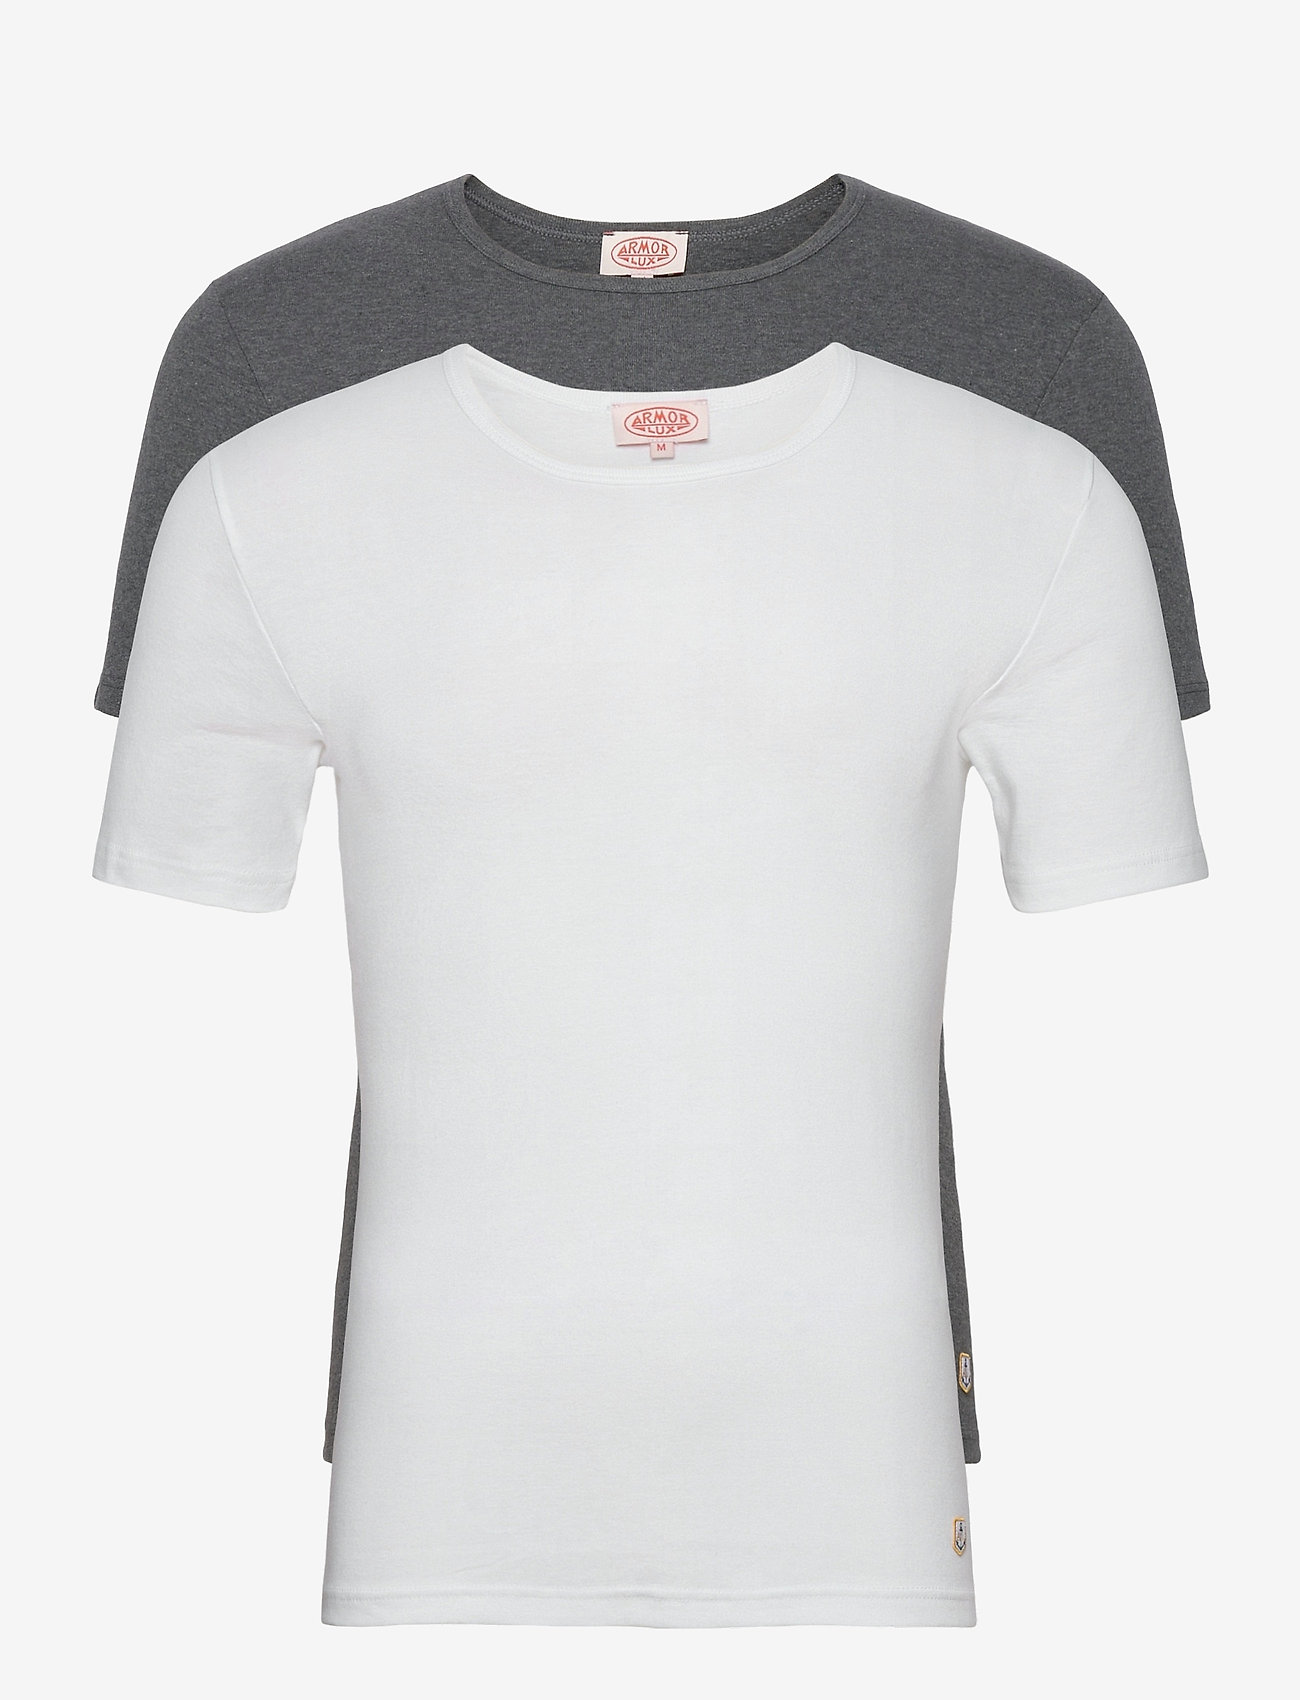 Armor Lux - 2 Pack T-Shirt - multipack - white/marl grey - 0